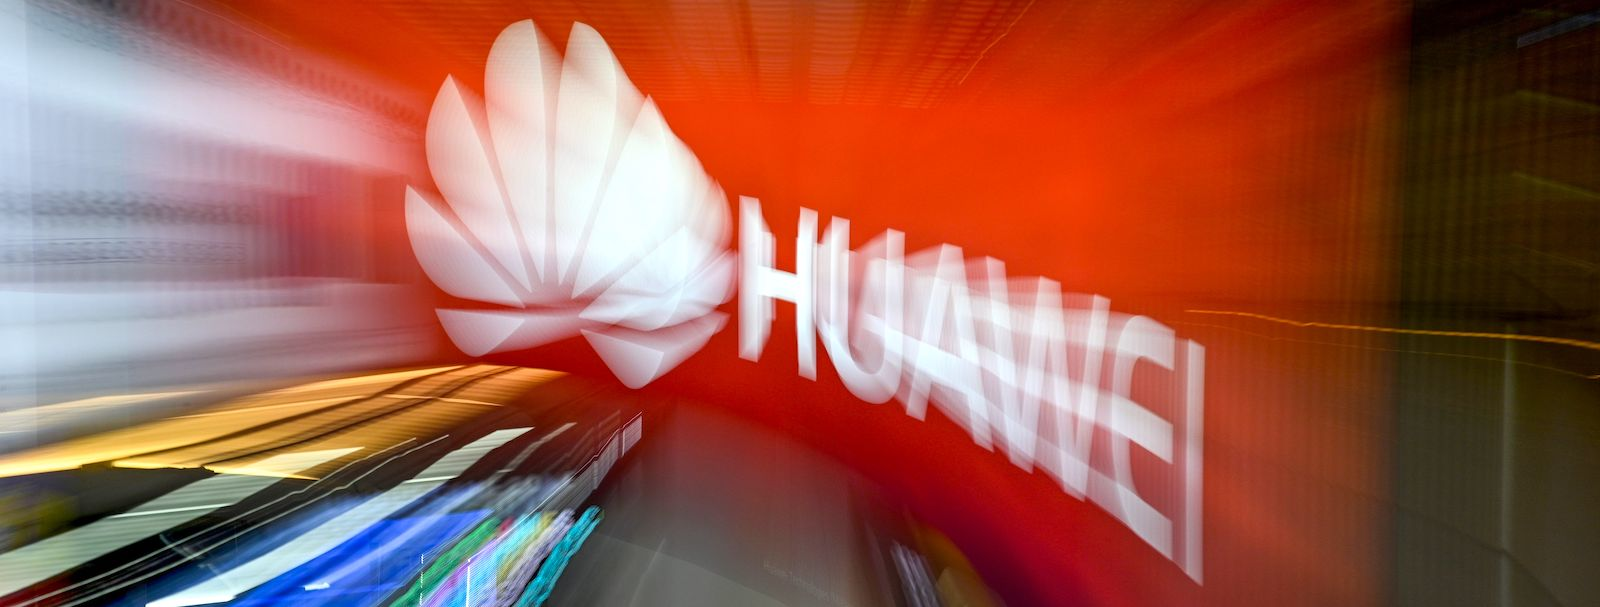 The logo of Chinese telecoms giant Huawei (Photo: Mohd Rasfan via Getty)